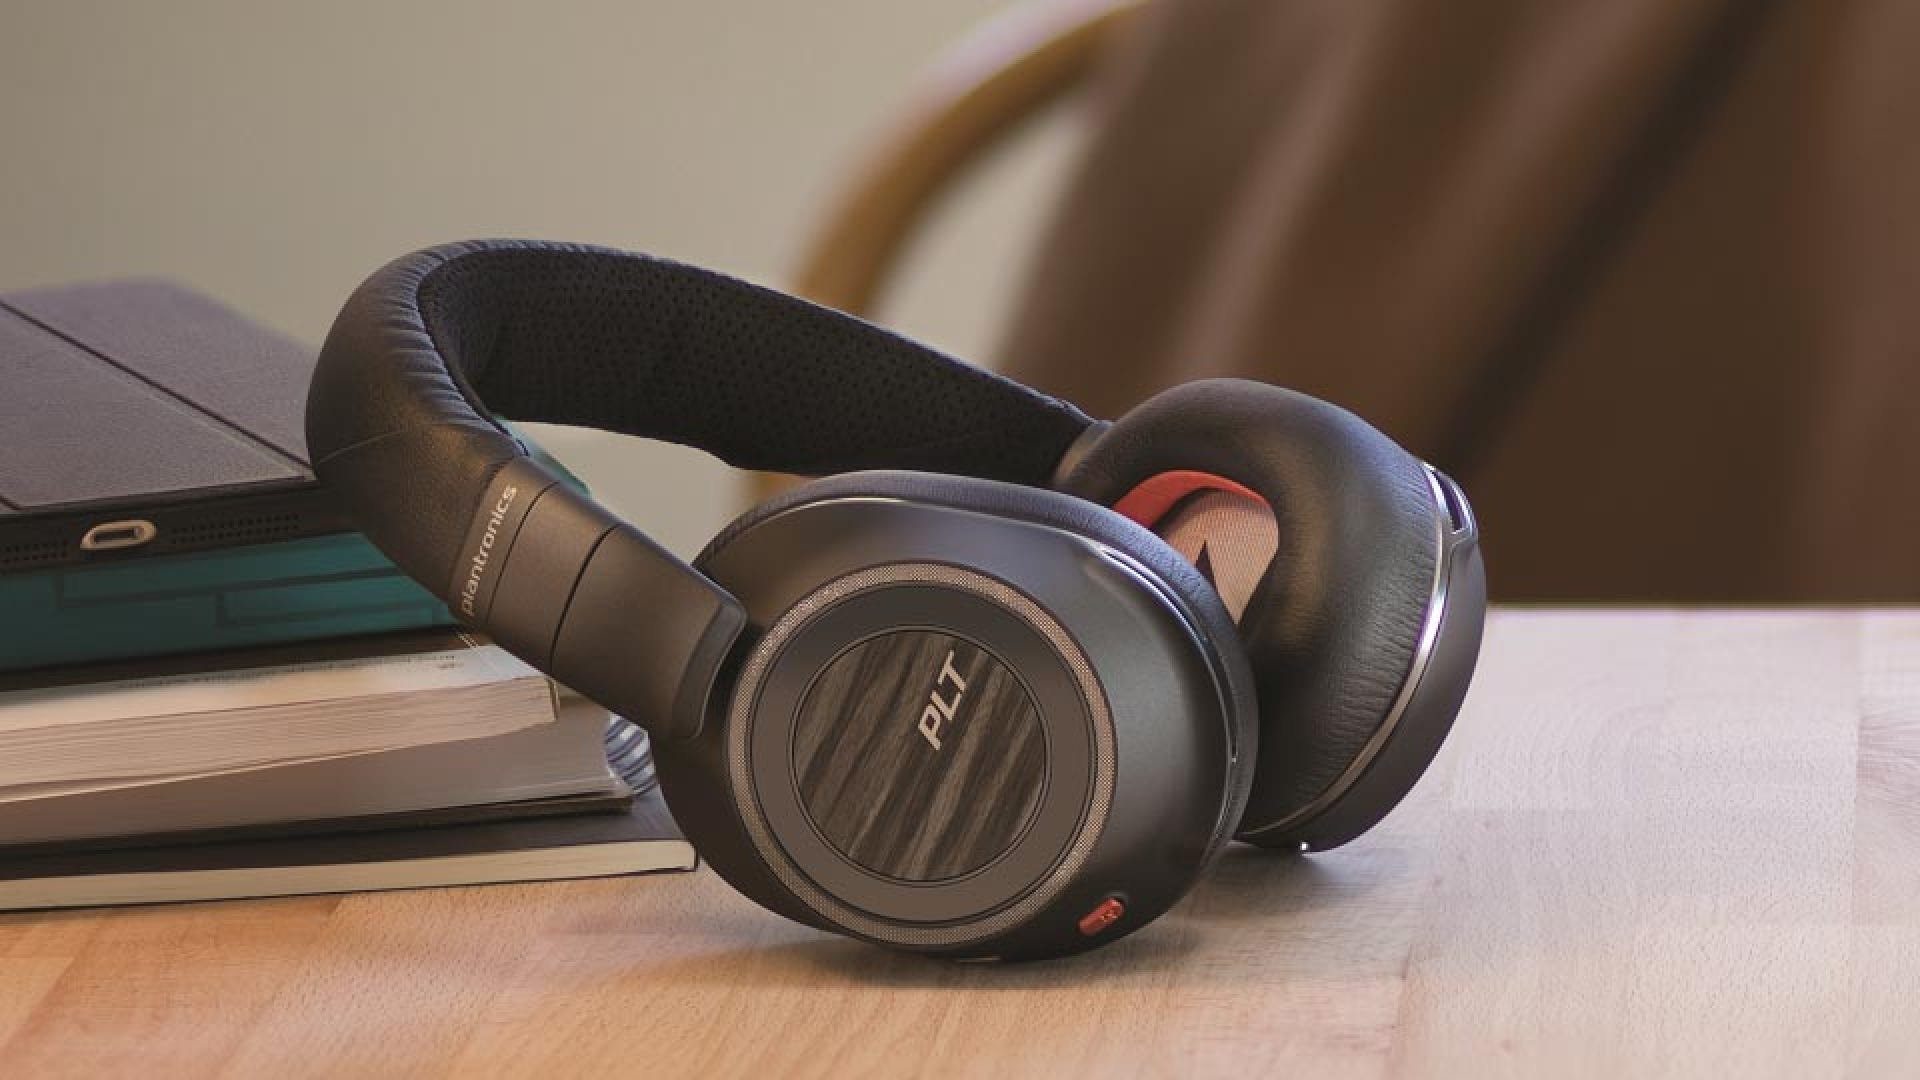 Plantronics Voyager 8200 Uc Headphones Review Great Sound On The Go Or In The Office Review Geek